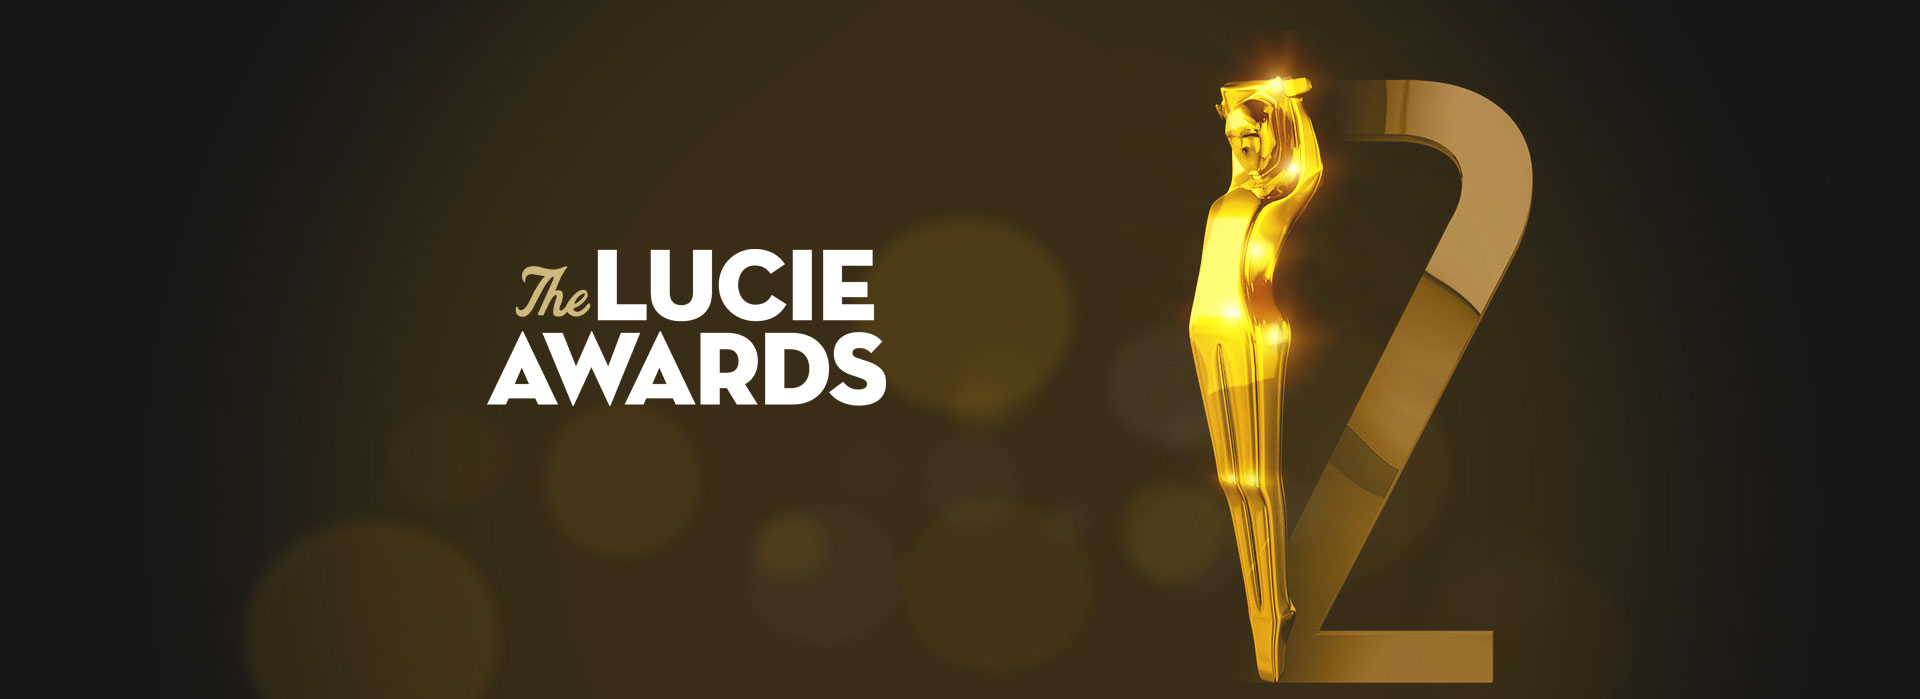 lucie-awards-bg